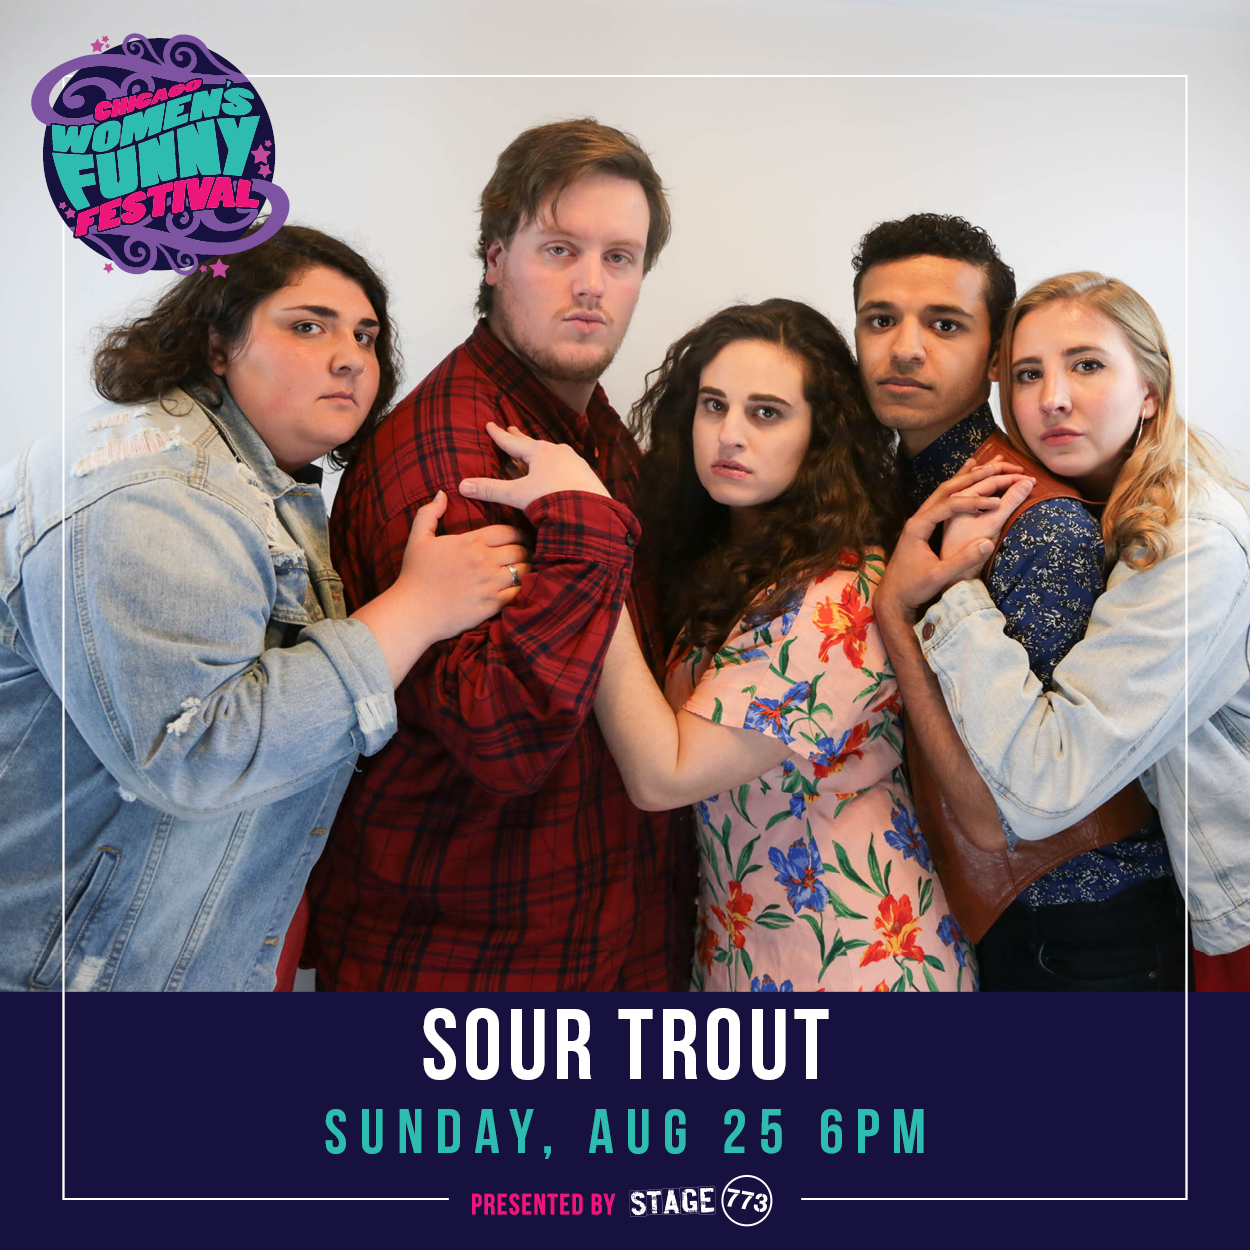 SourTrout_Sunday_6PM_CWFF20195.jpg